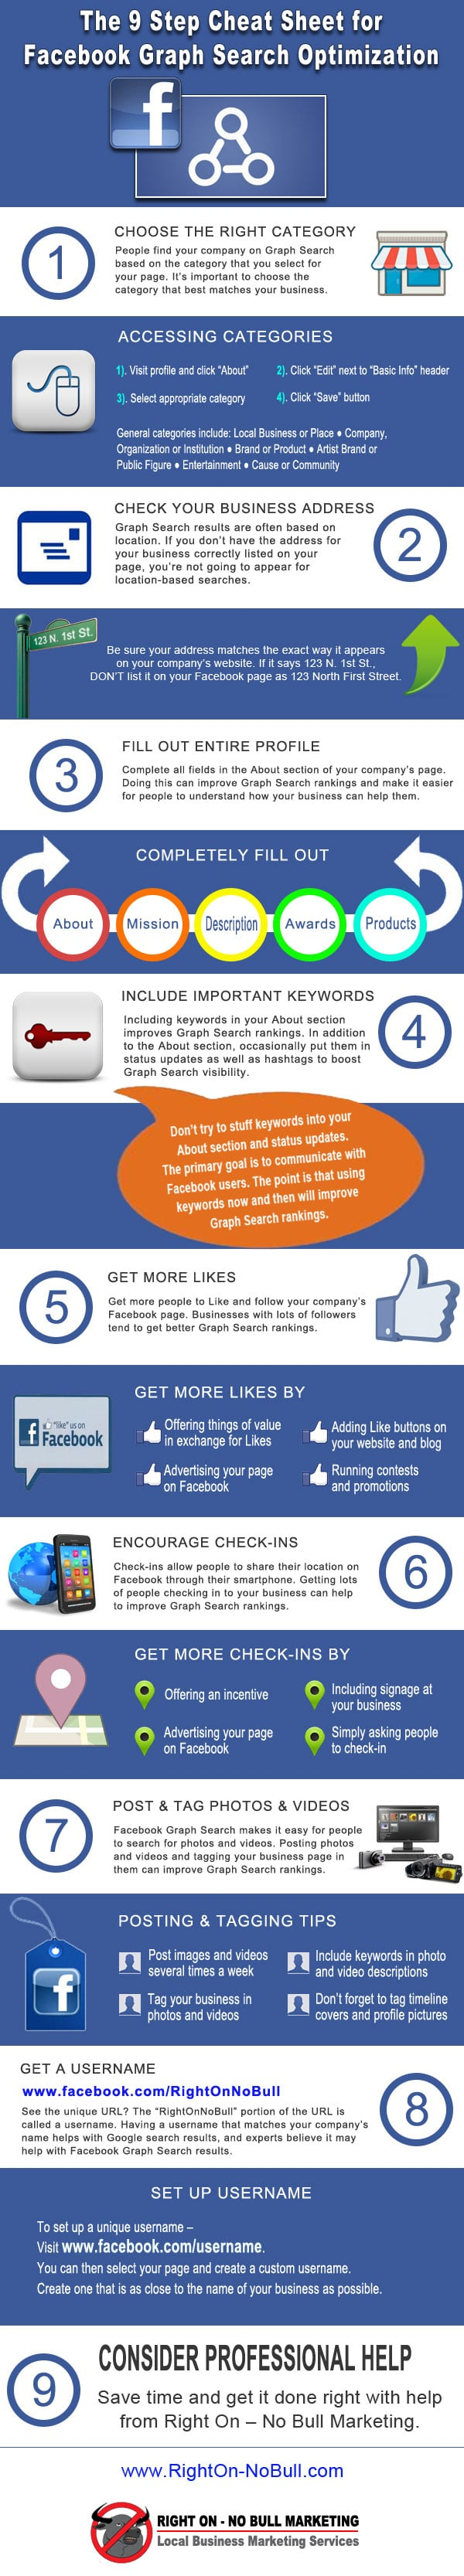 9 Steps To Facebook Graph Search Optimization [Cheat Sheet]